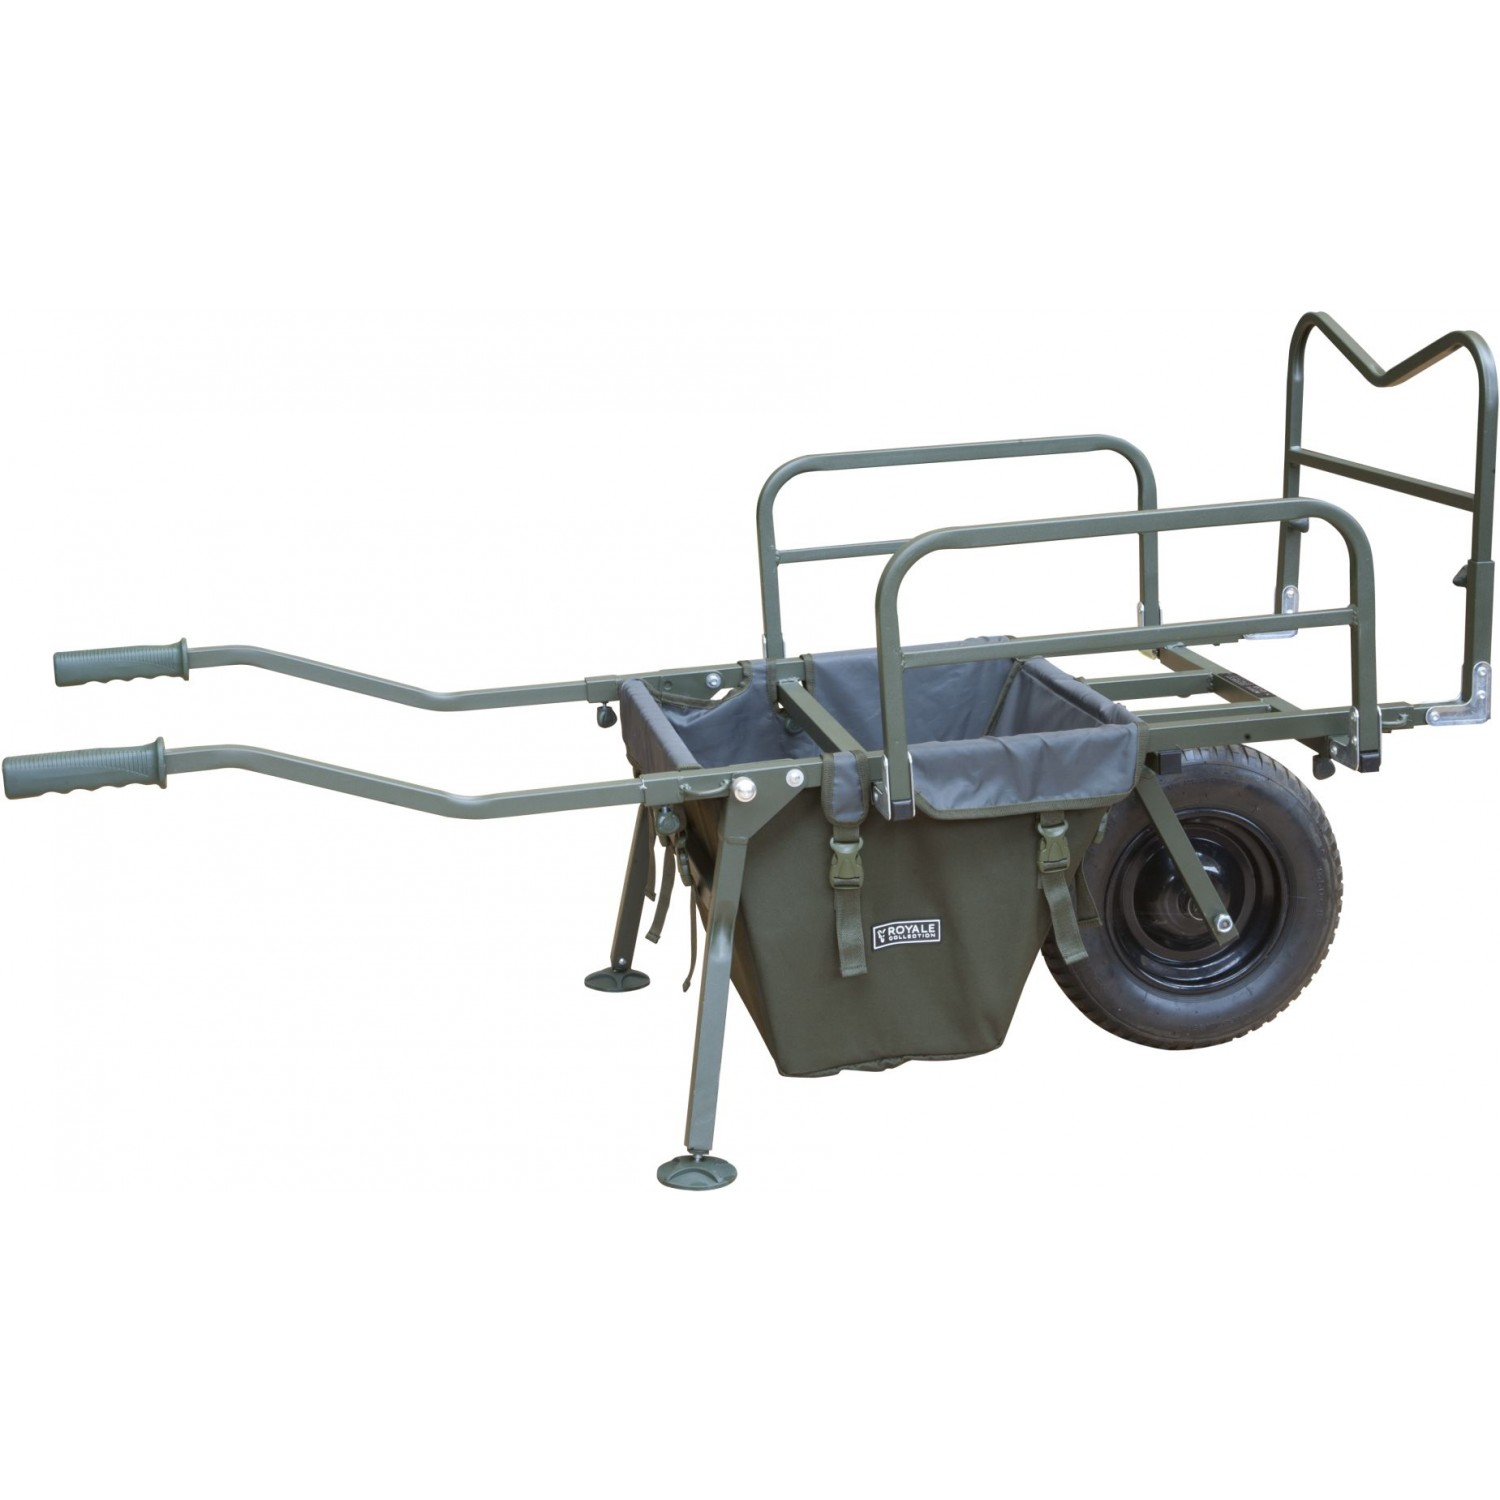 FOX Royale Carp Barrow XT with Barrow Bag